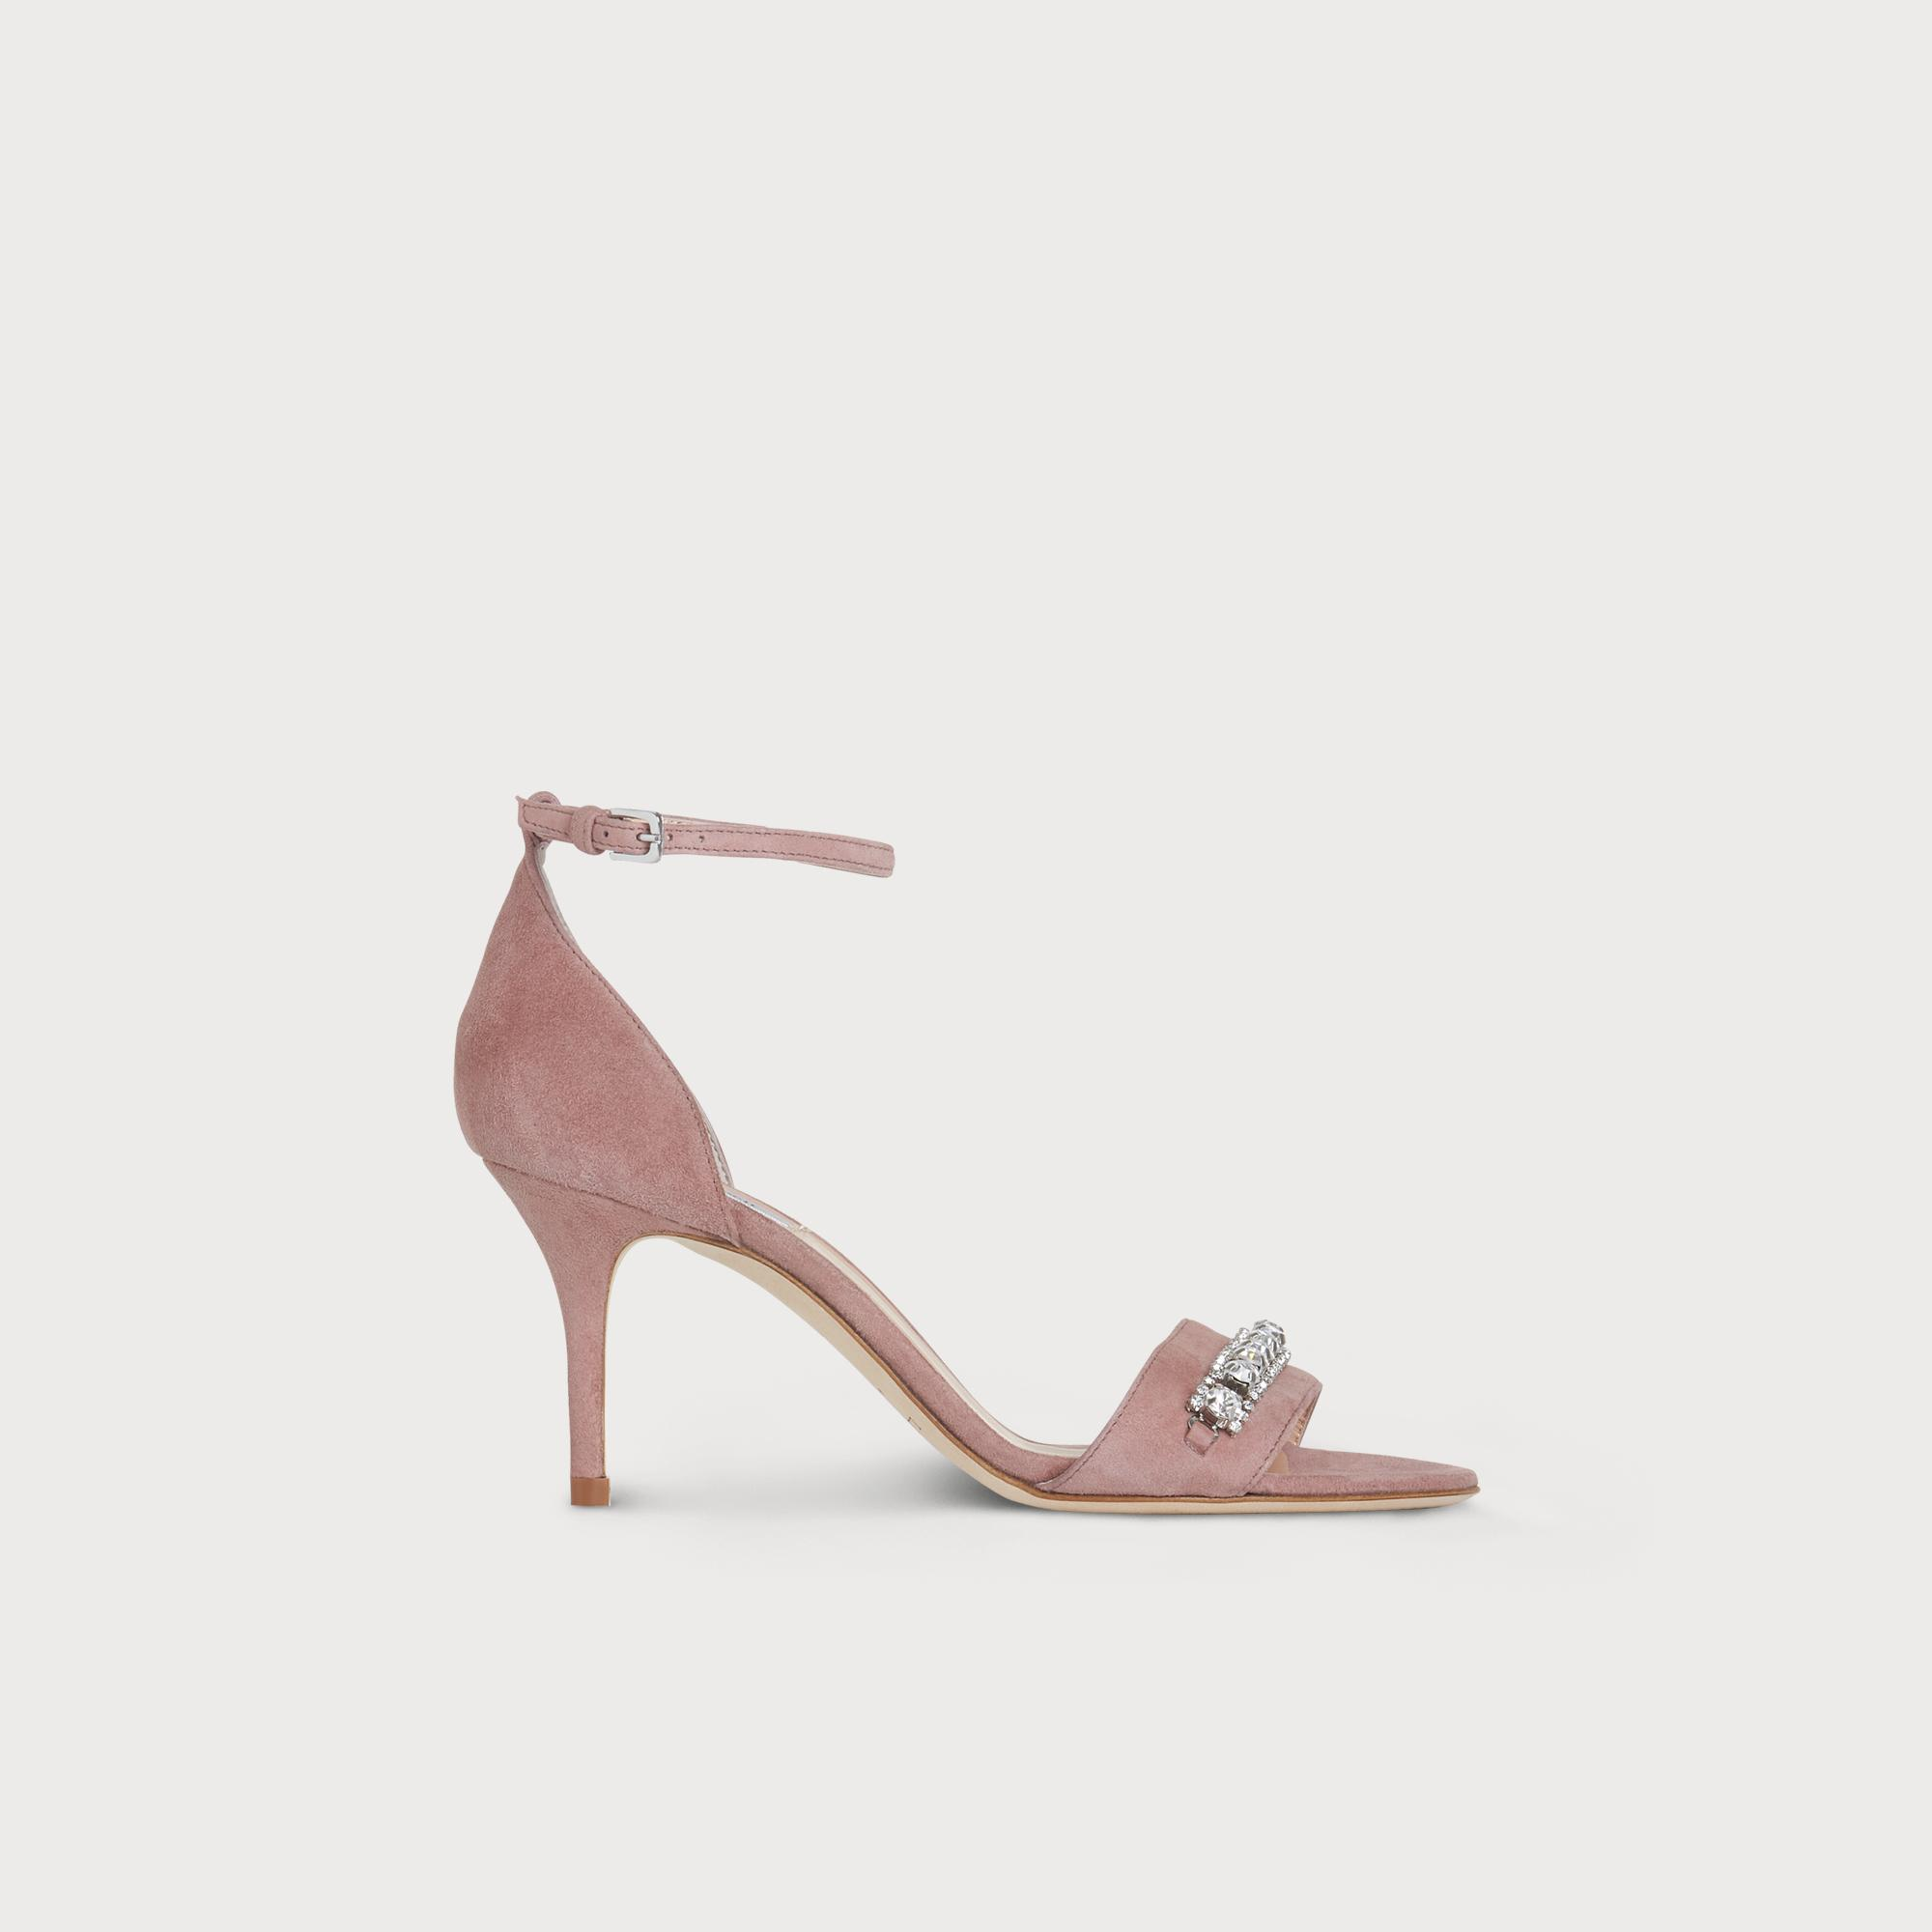 Valora Dark Pink Suede Sandals